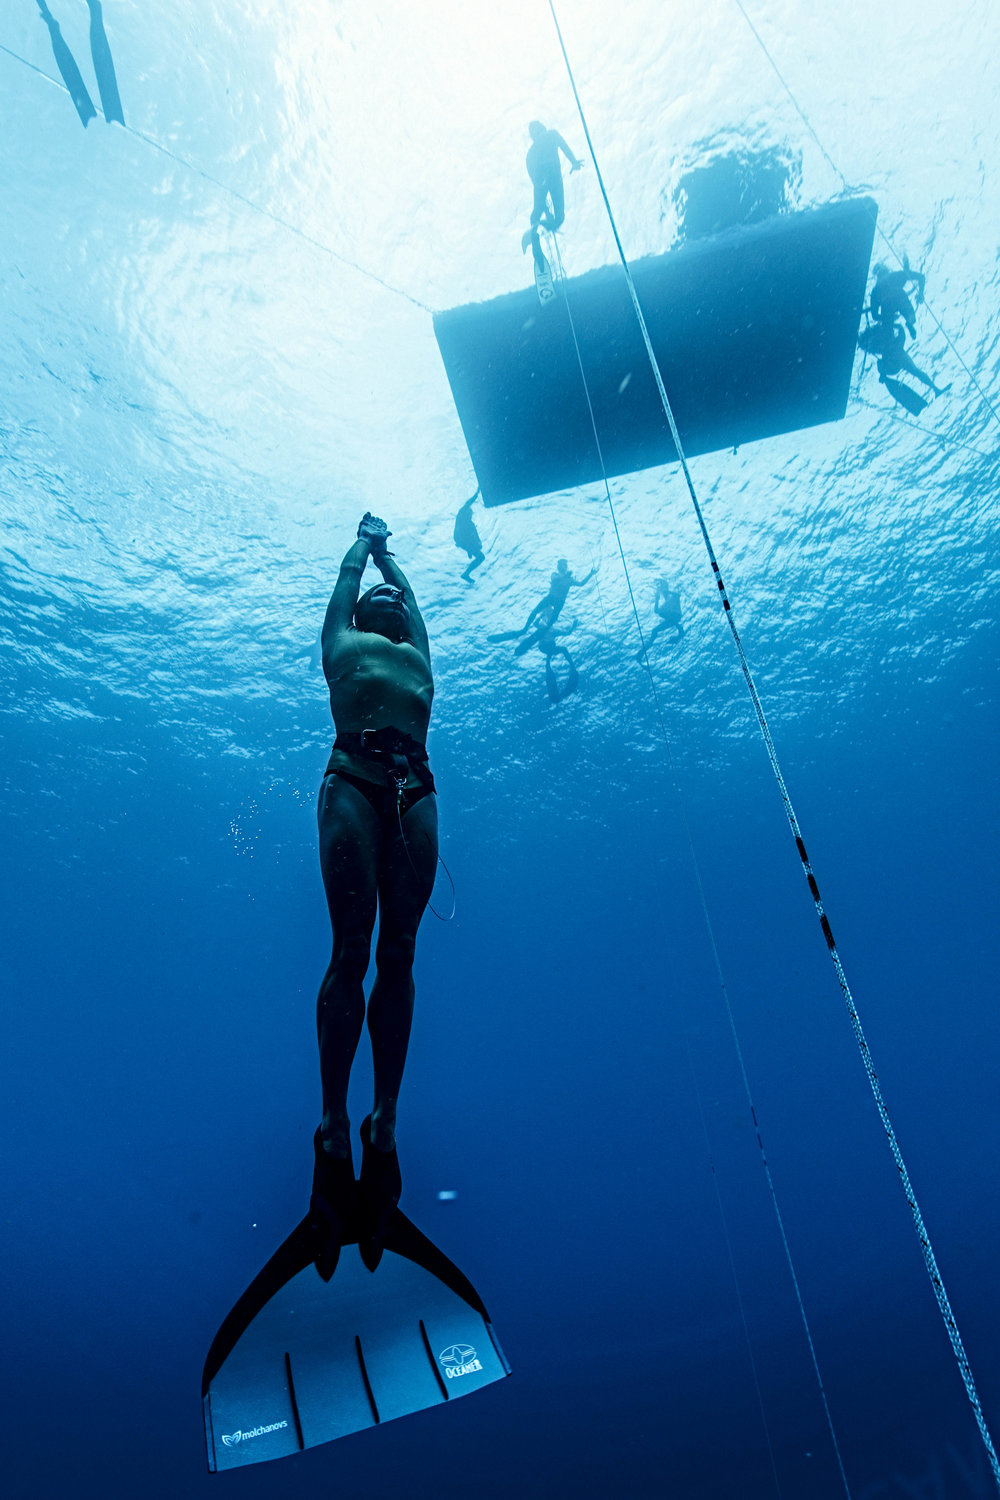 Julia Wheeler wears her Mono Fin, training in Roatan, Honduras. Representing Australia in the 2017 World Freediving Championships. Ranked 12th place overall female / 2nd Australian.